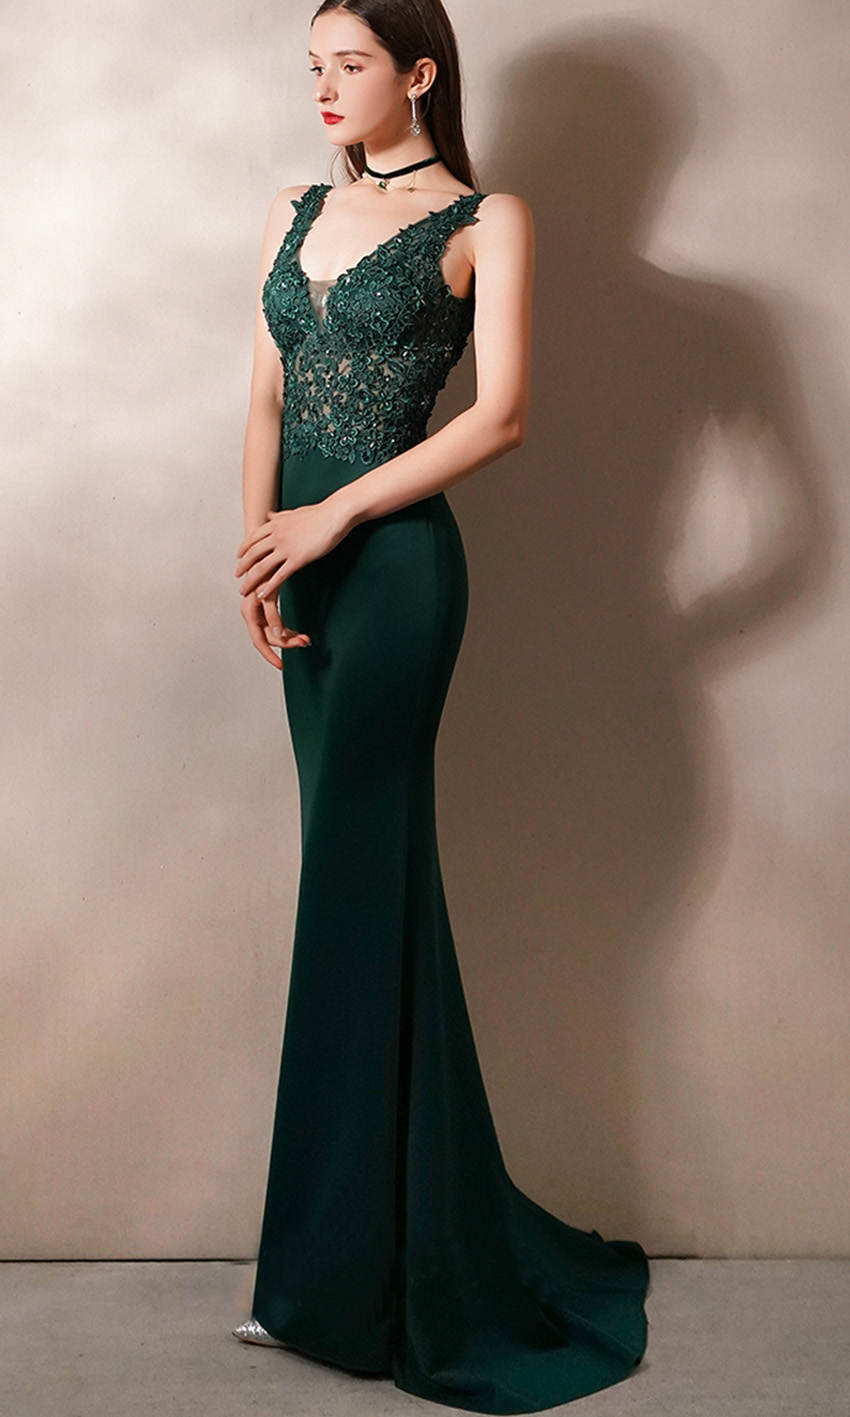 Green V-neck Applique Fitted Prom Dresses With Train KSP577